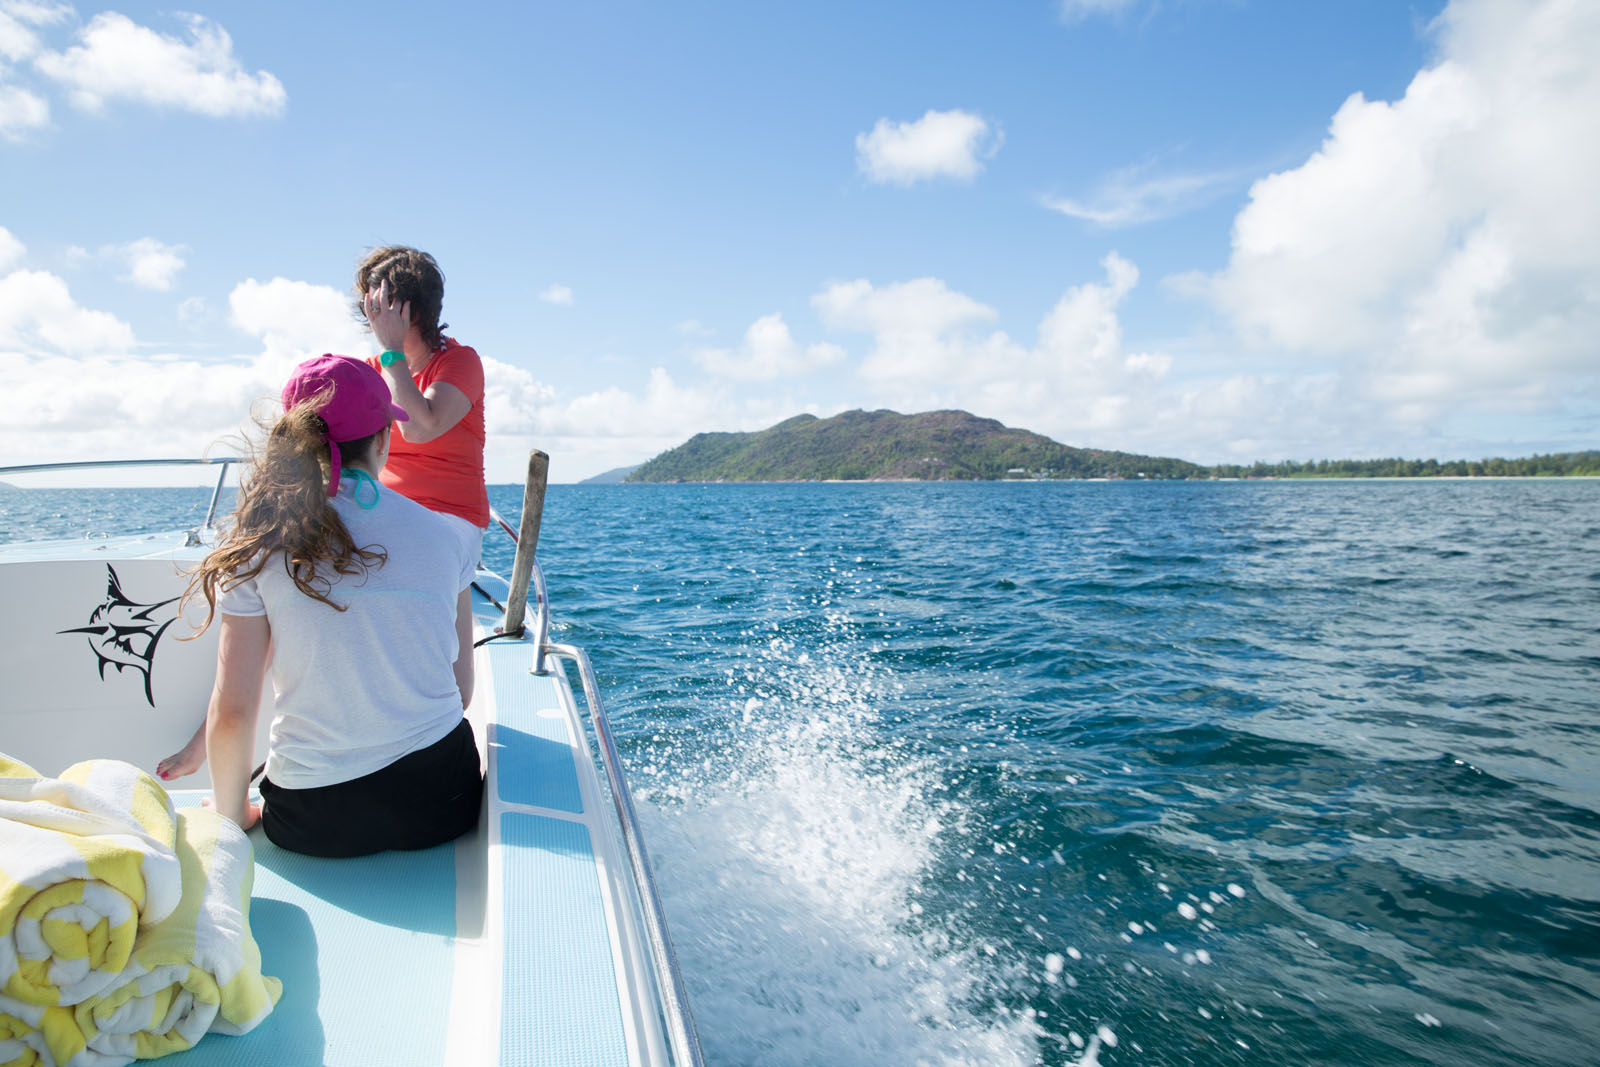 Eloise heads for the charming island of La Digue